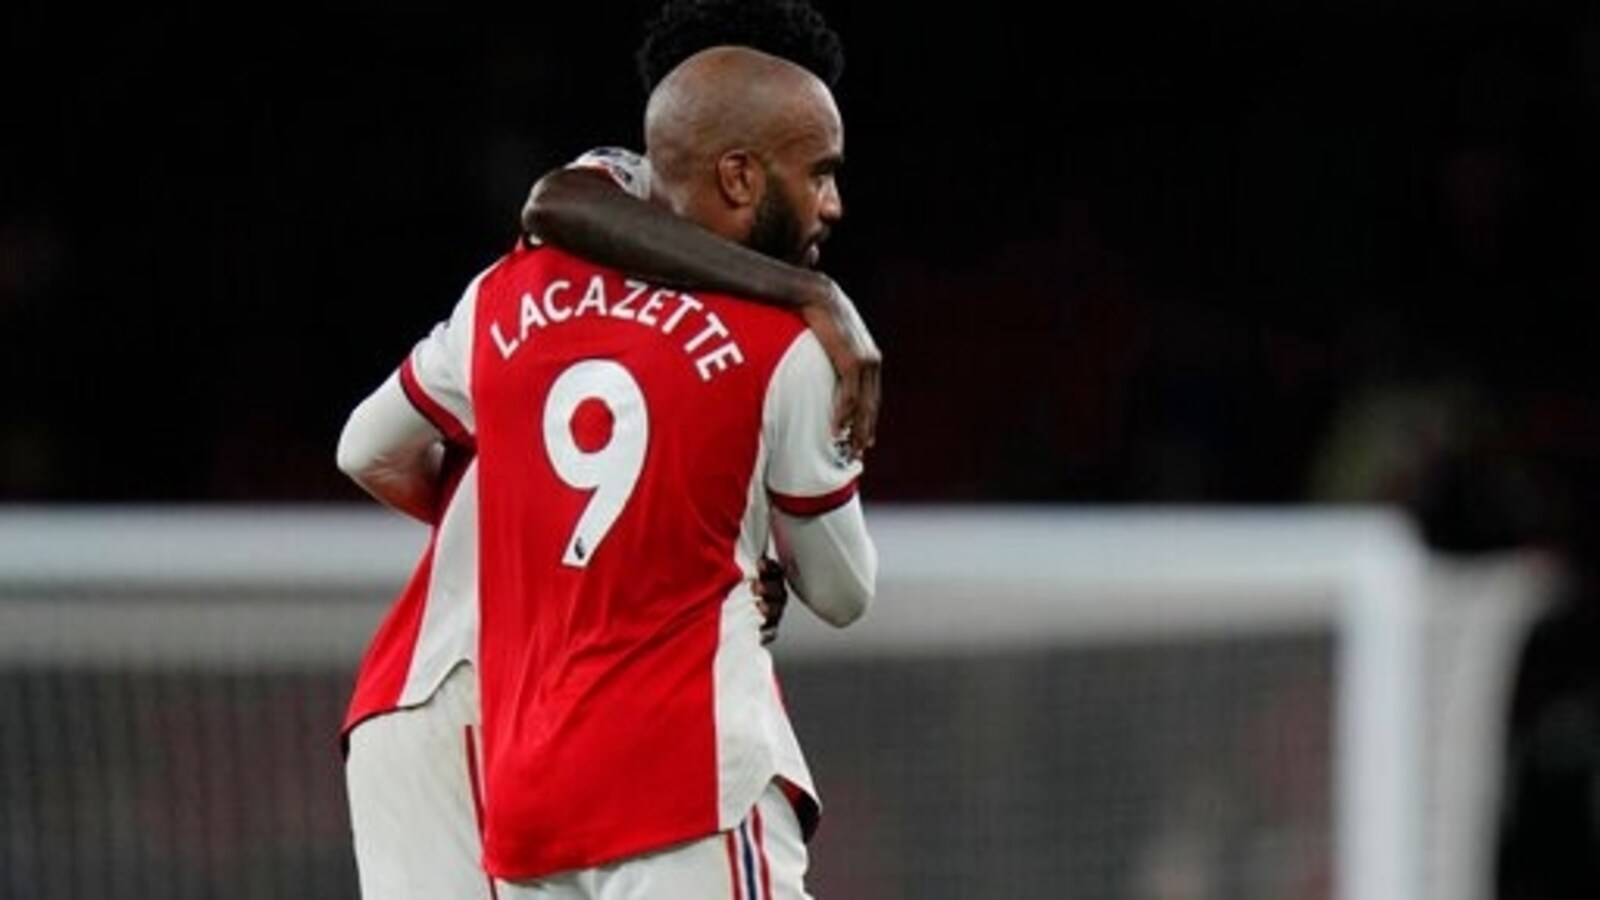 Lacazette equalizes late for Arsenal in draw with Palace